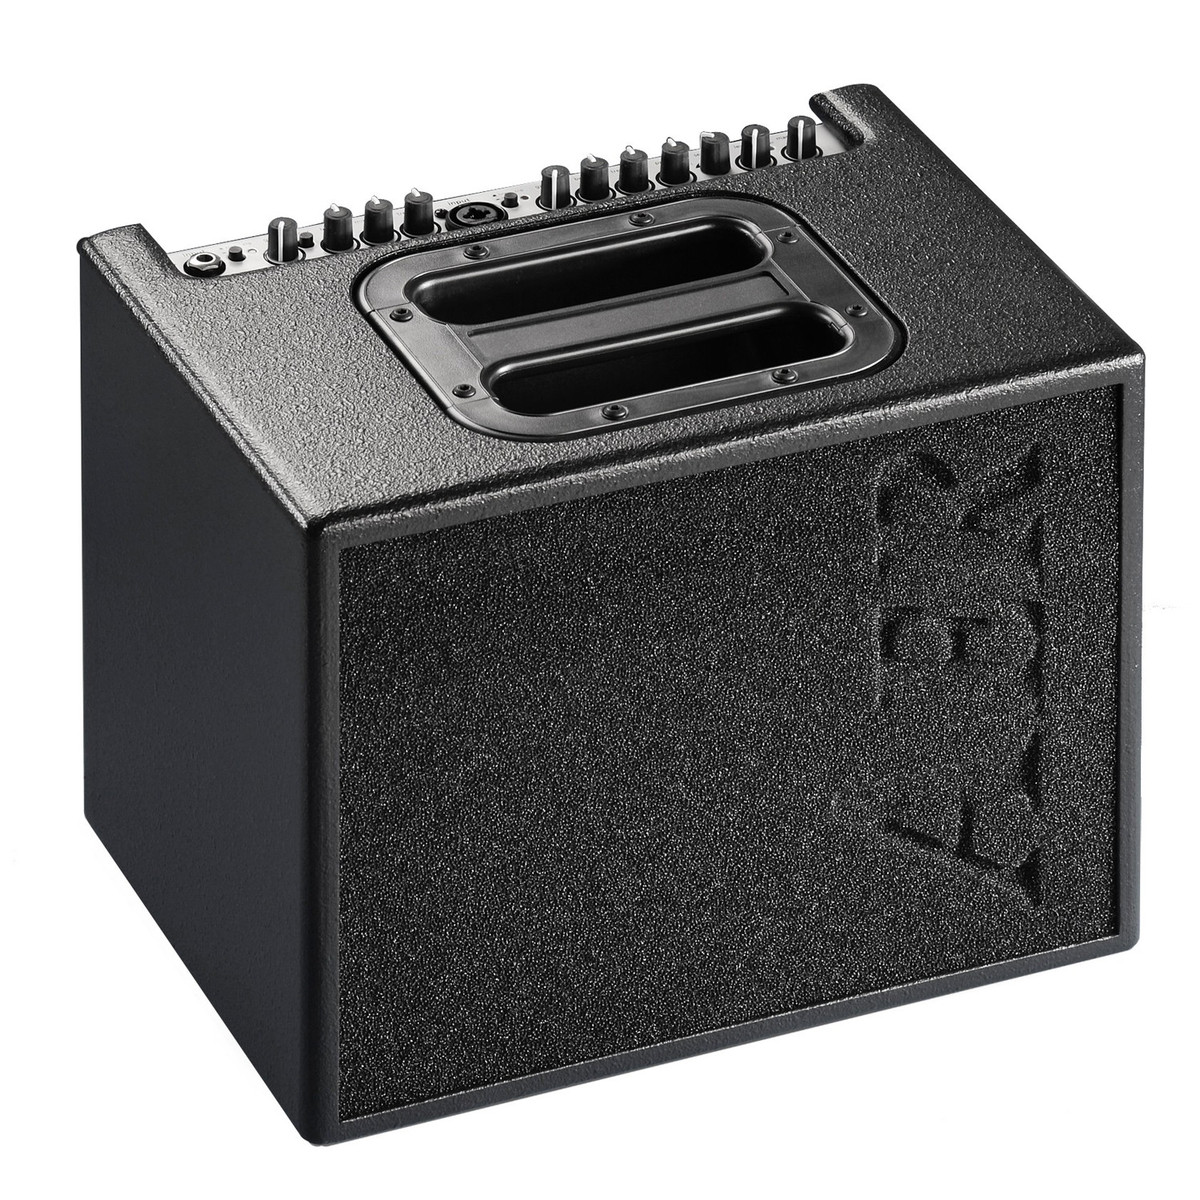 aer compact 60 iii acoustic guitar amp black box opened at. Black Bedroom Furniture Sets. Home Design Ideas